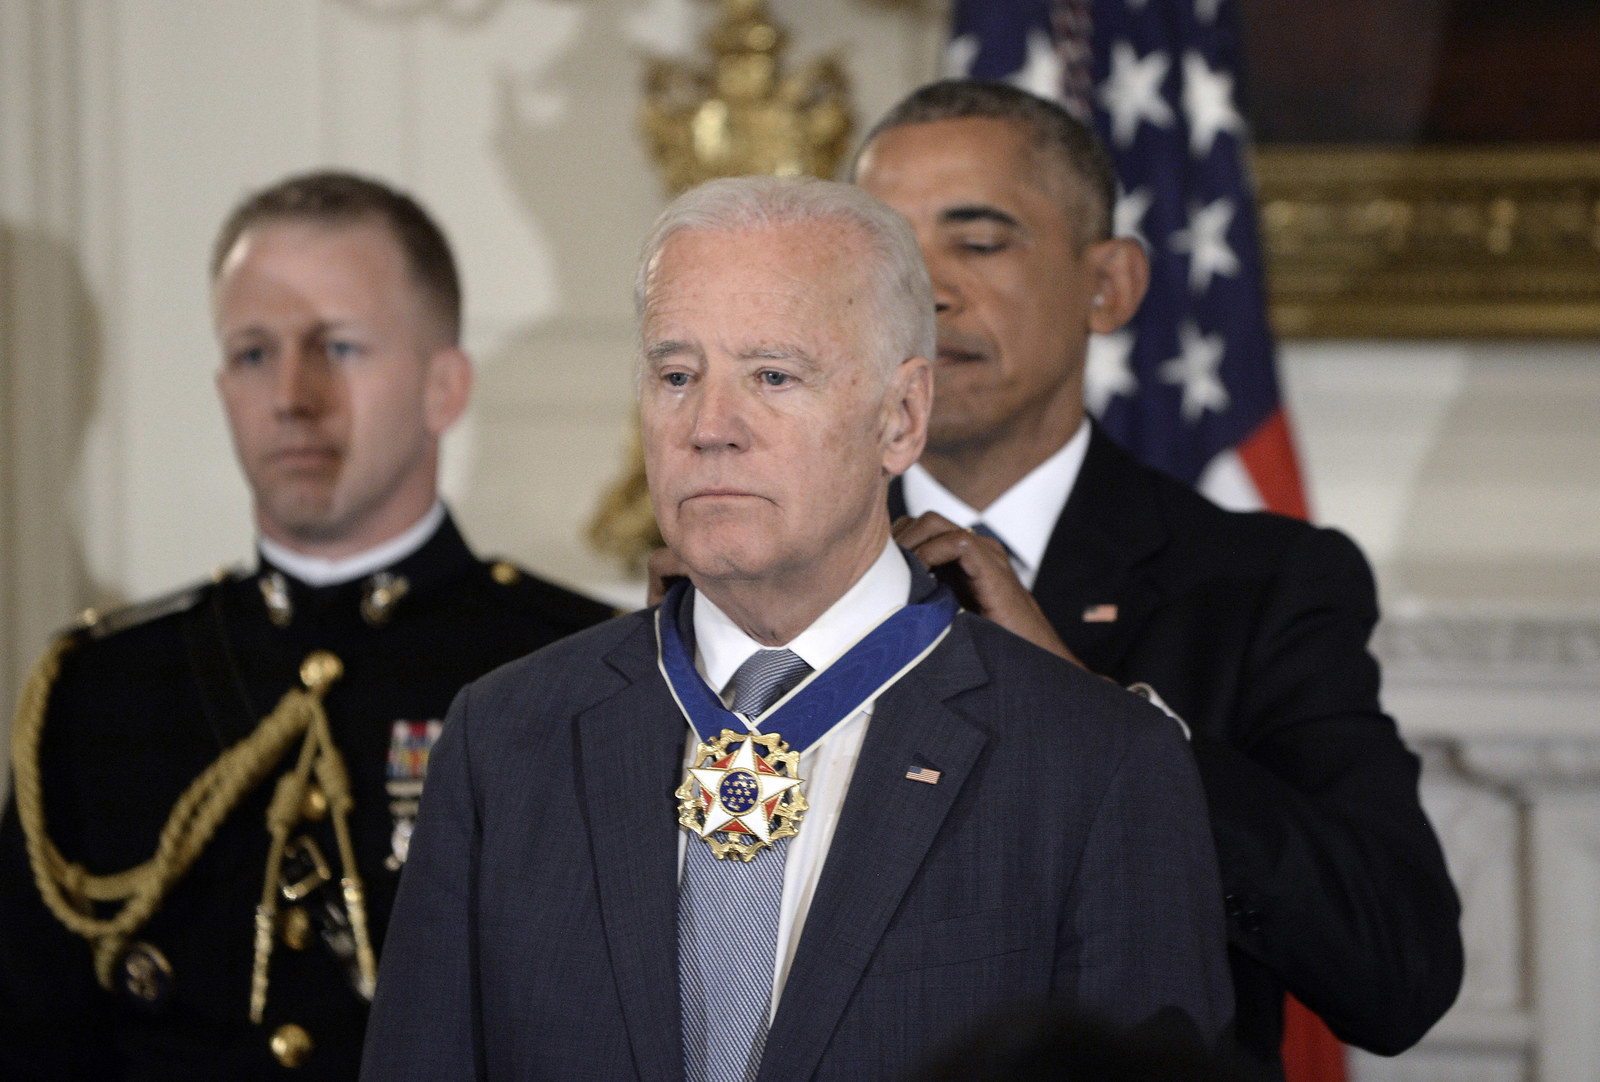 sub buzz 31296 1484397134 3?downsize=715 *&output format=auto&output quality=auto obama surprising biden with the medal of freedom has been turned